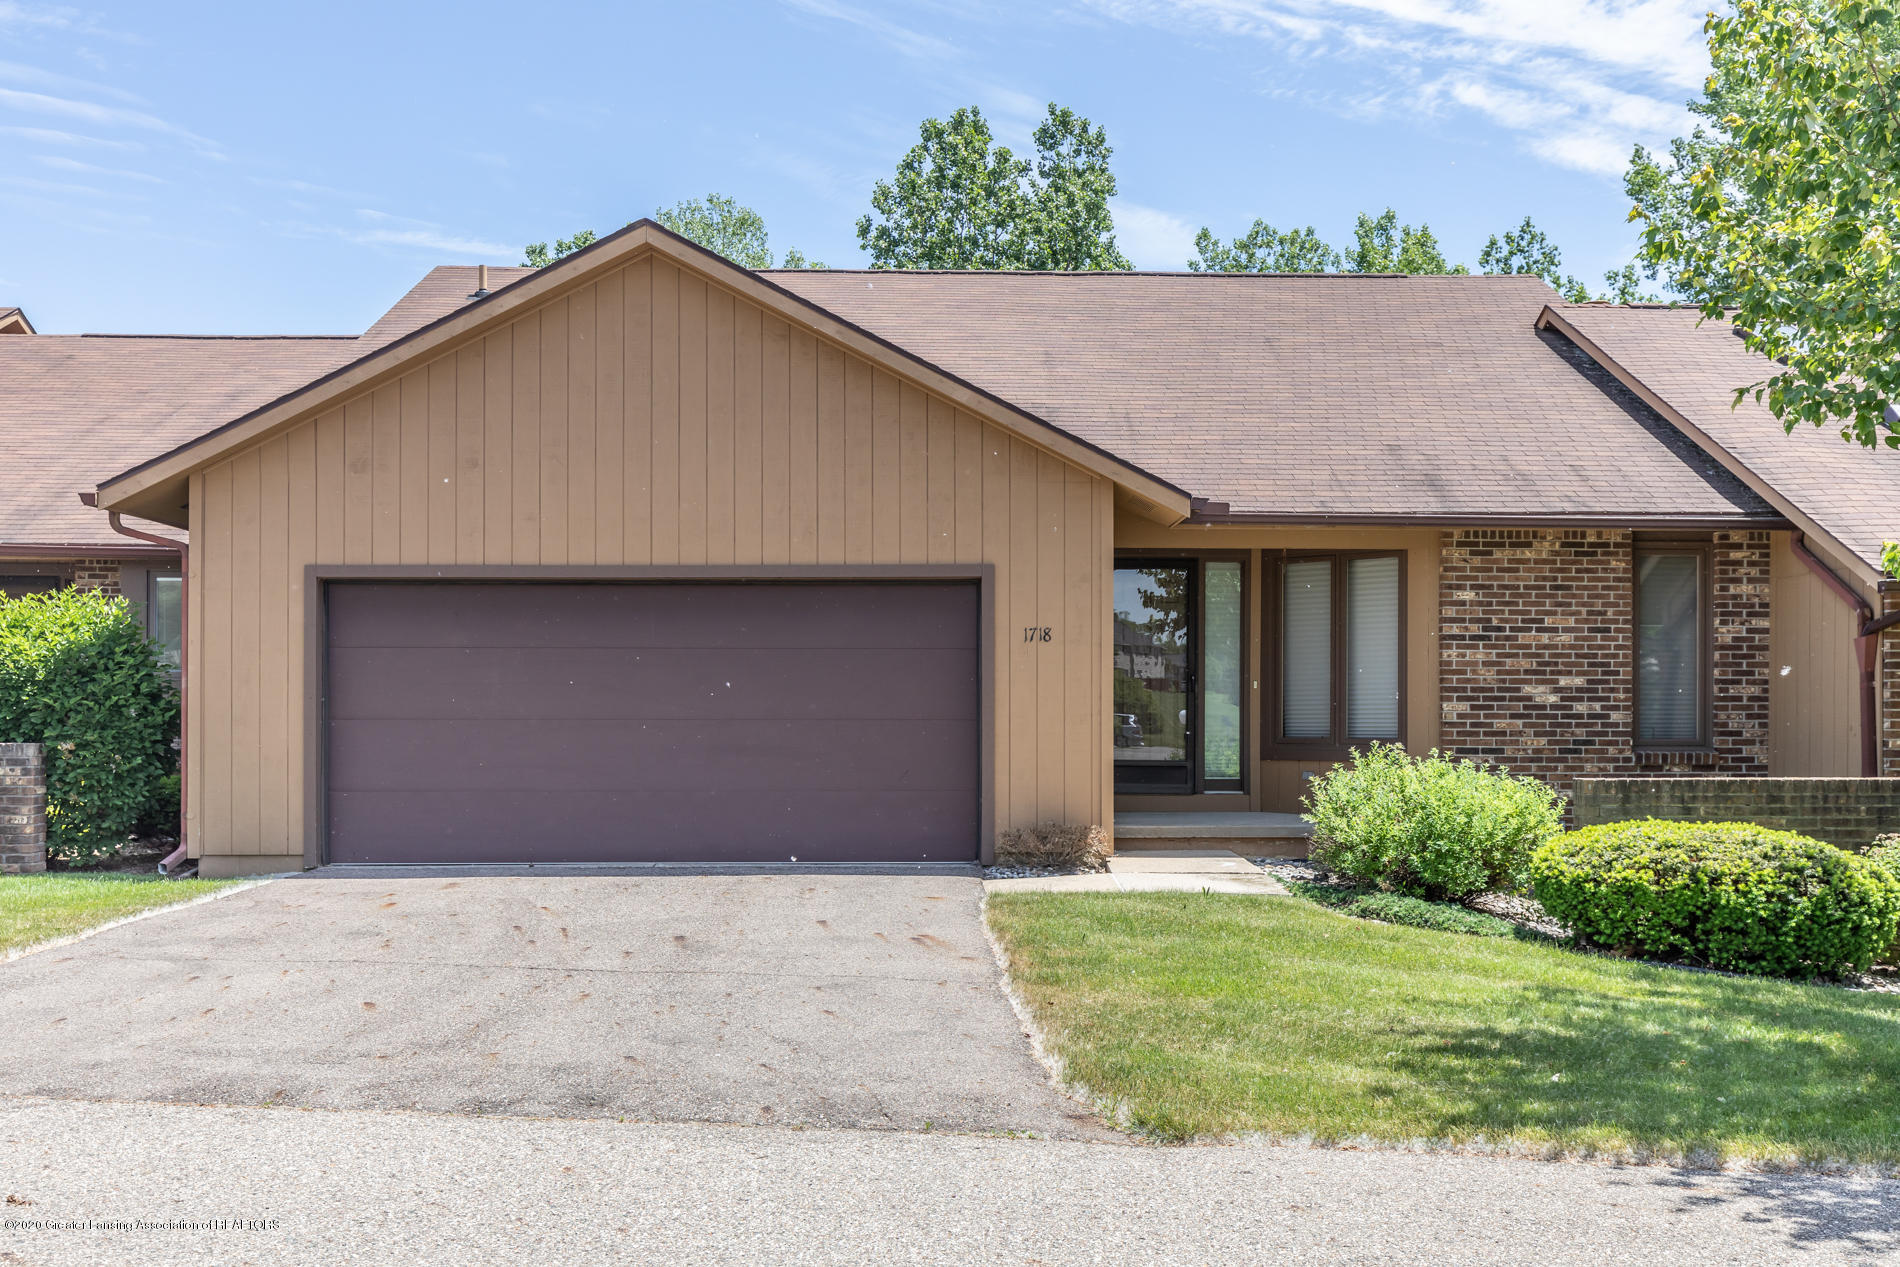 1718 Willow Creek Dr 58 - willowcreekfront(1of1) - 1